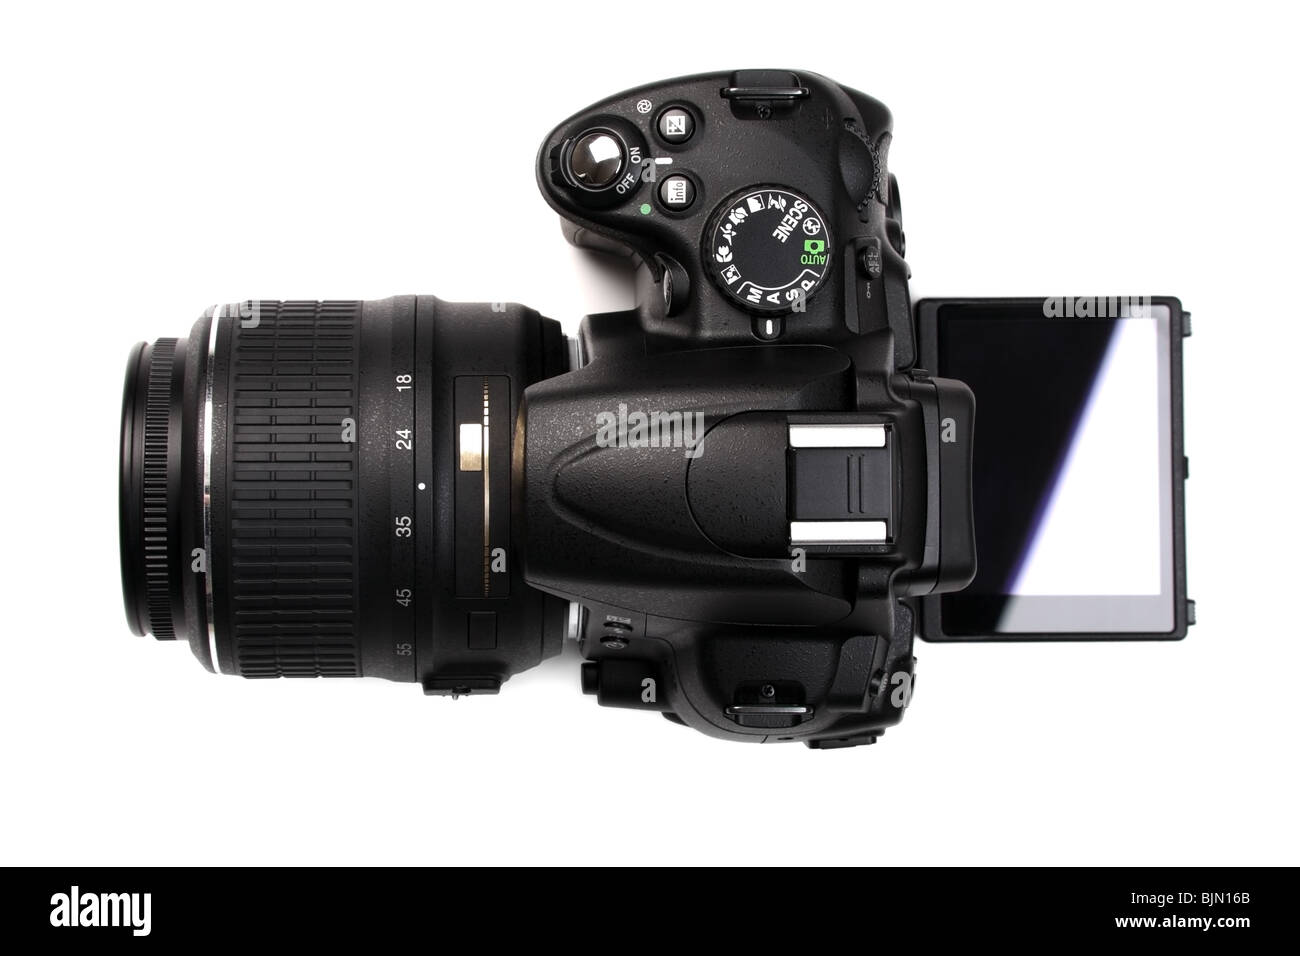 Modern DSLR camera with open vari-angle monitor. Top view. Isolated on white background. - Stock Image